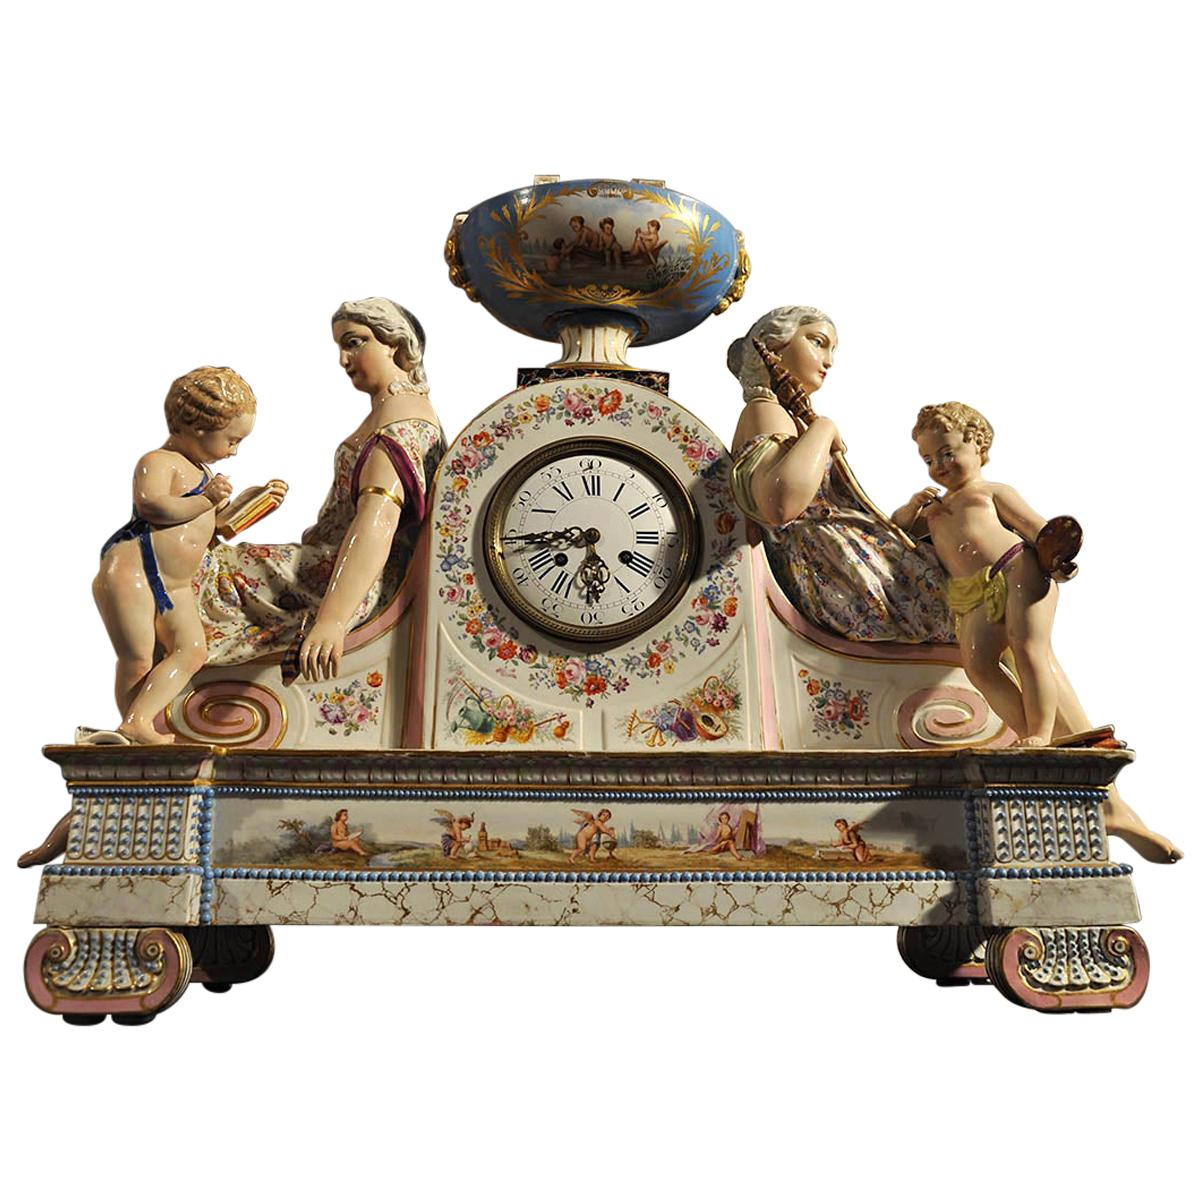 French Empire Porcelain Mantle Clock, 19th Century